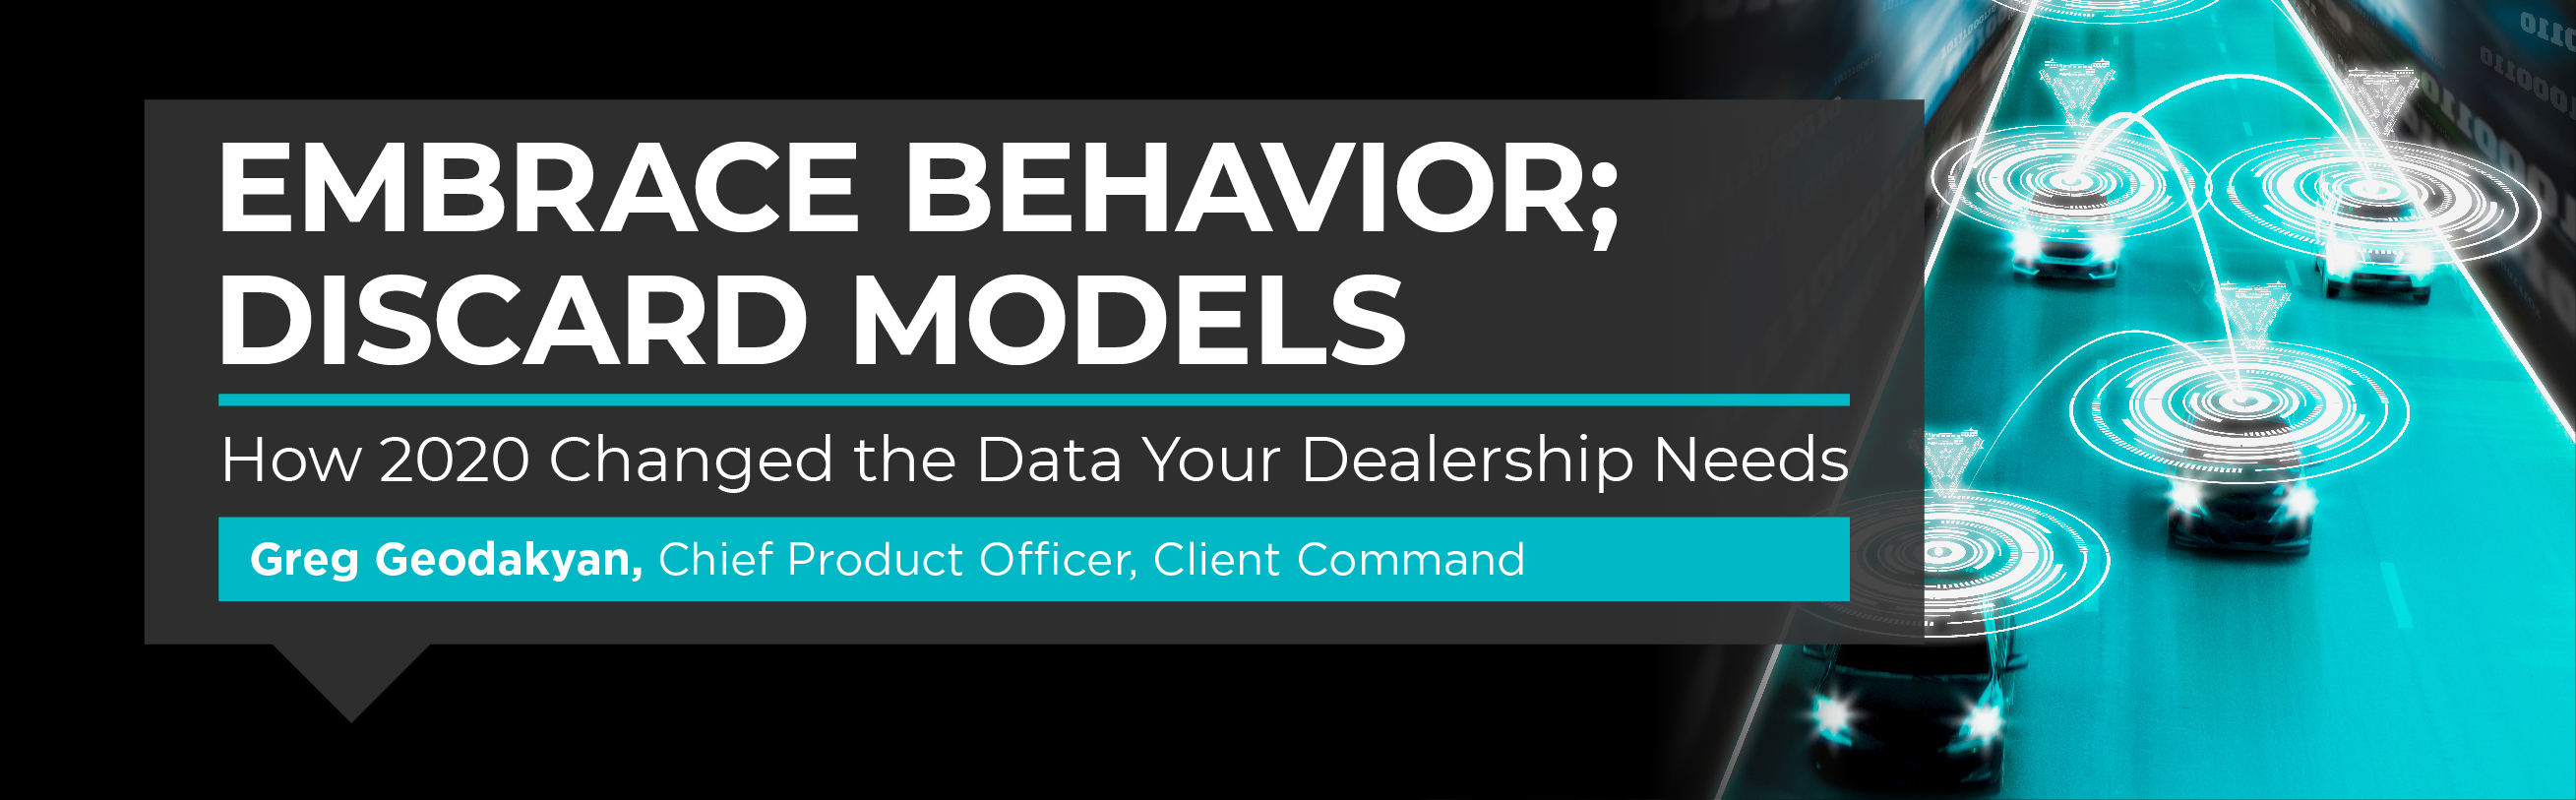 Embrace Behavior: How 2020 Changed the Data Your Dealership Needs